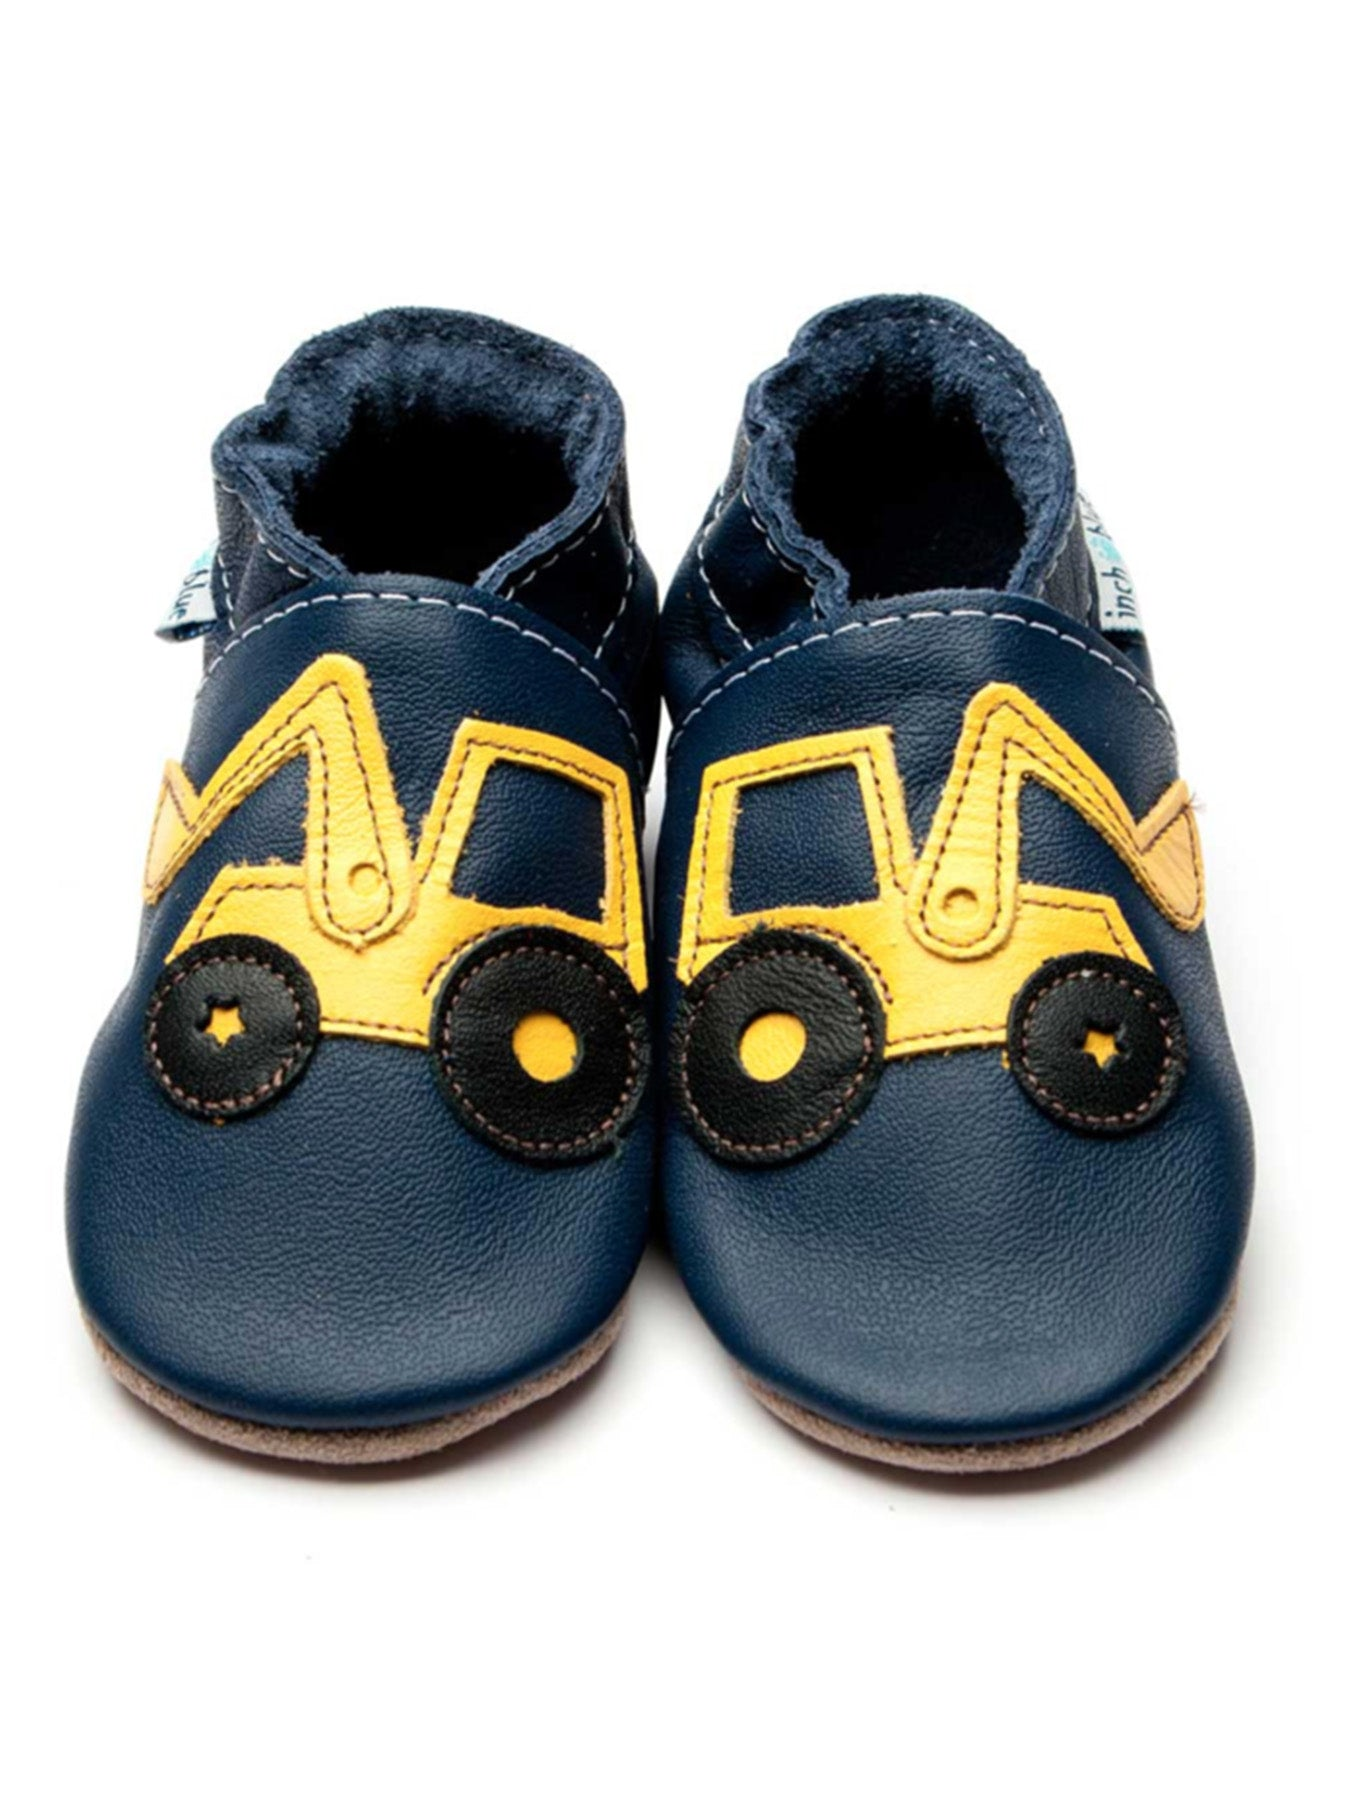 Navy Digger Soft Shoe